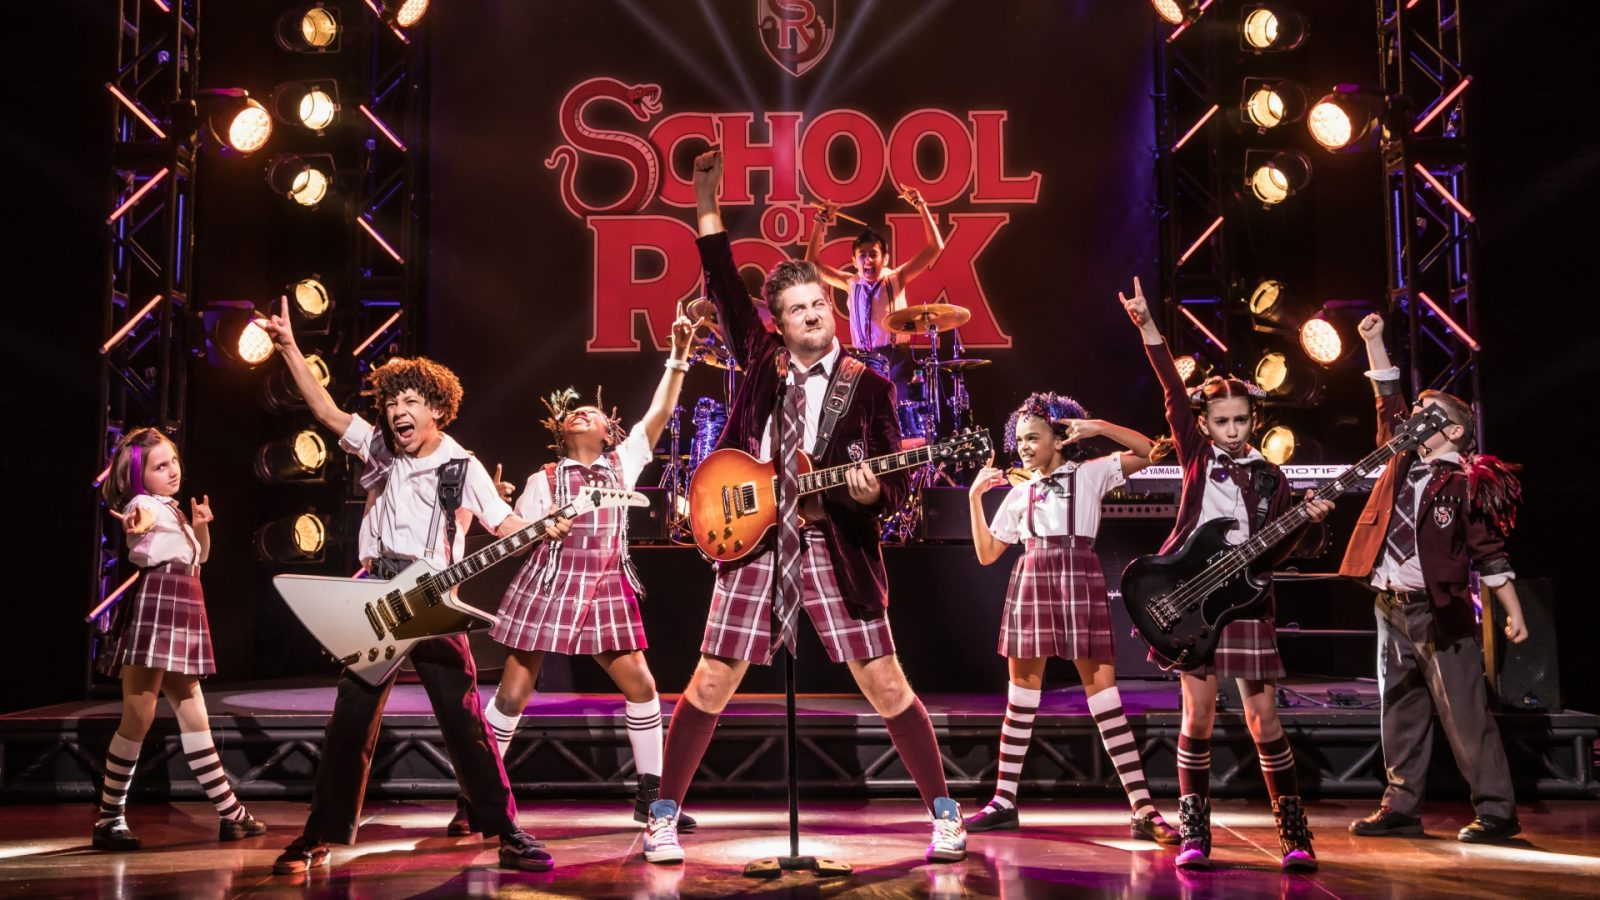 6 Musicals To See With Your Family This Year, school of rock broadway may 2017 1600x900%, 6-9, 4-5, 2-3, 10-13%